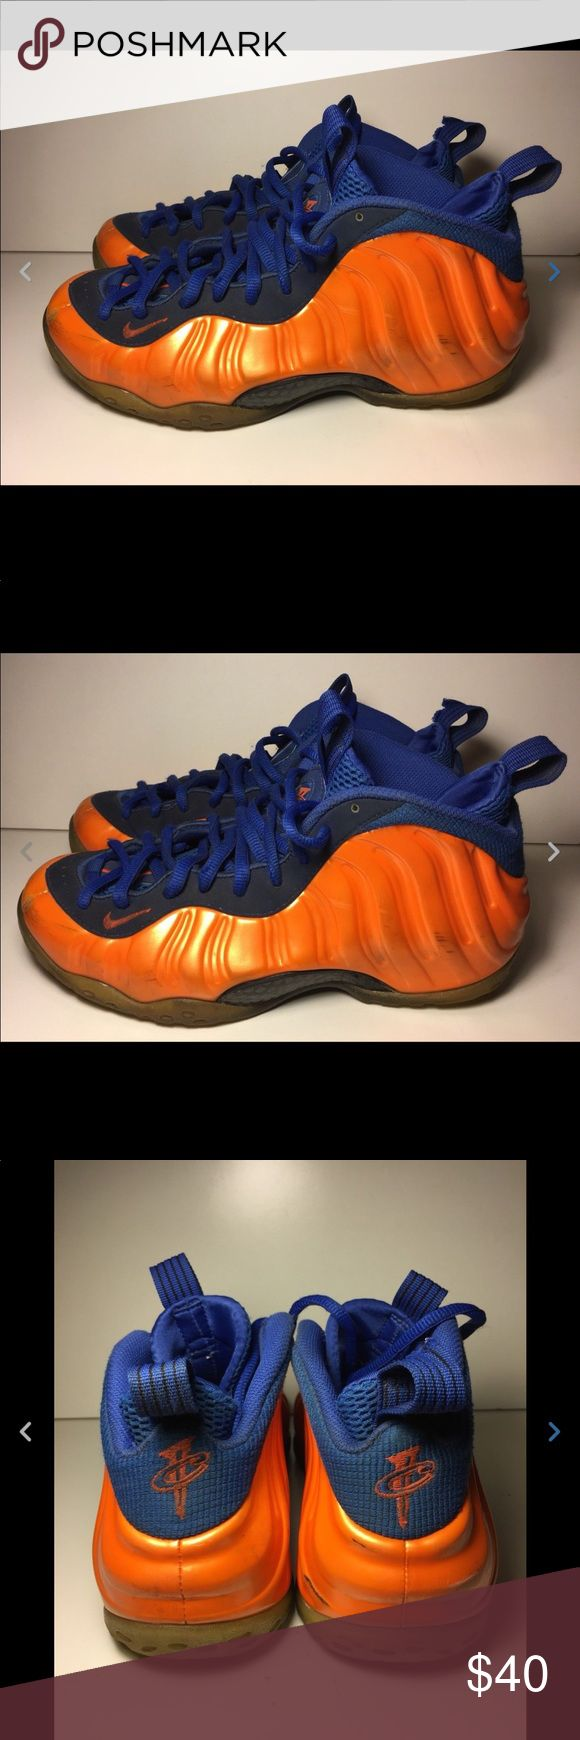 Knicks foamposites size 8.5 up for trades or offer Pretty good condition, look better in person than pictures, selling for the low 100% auth Nike Shoes Sneakers